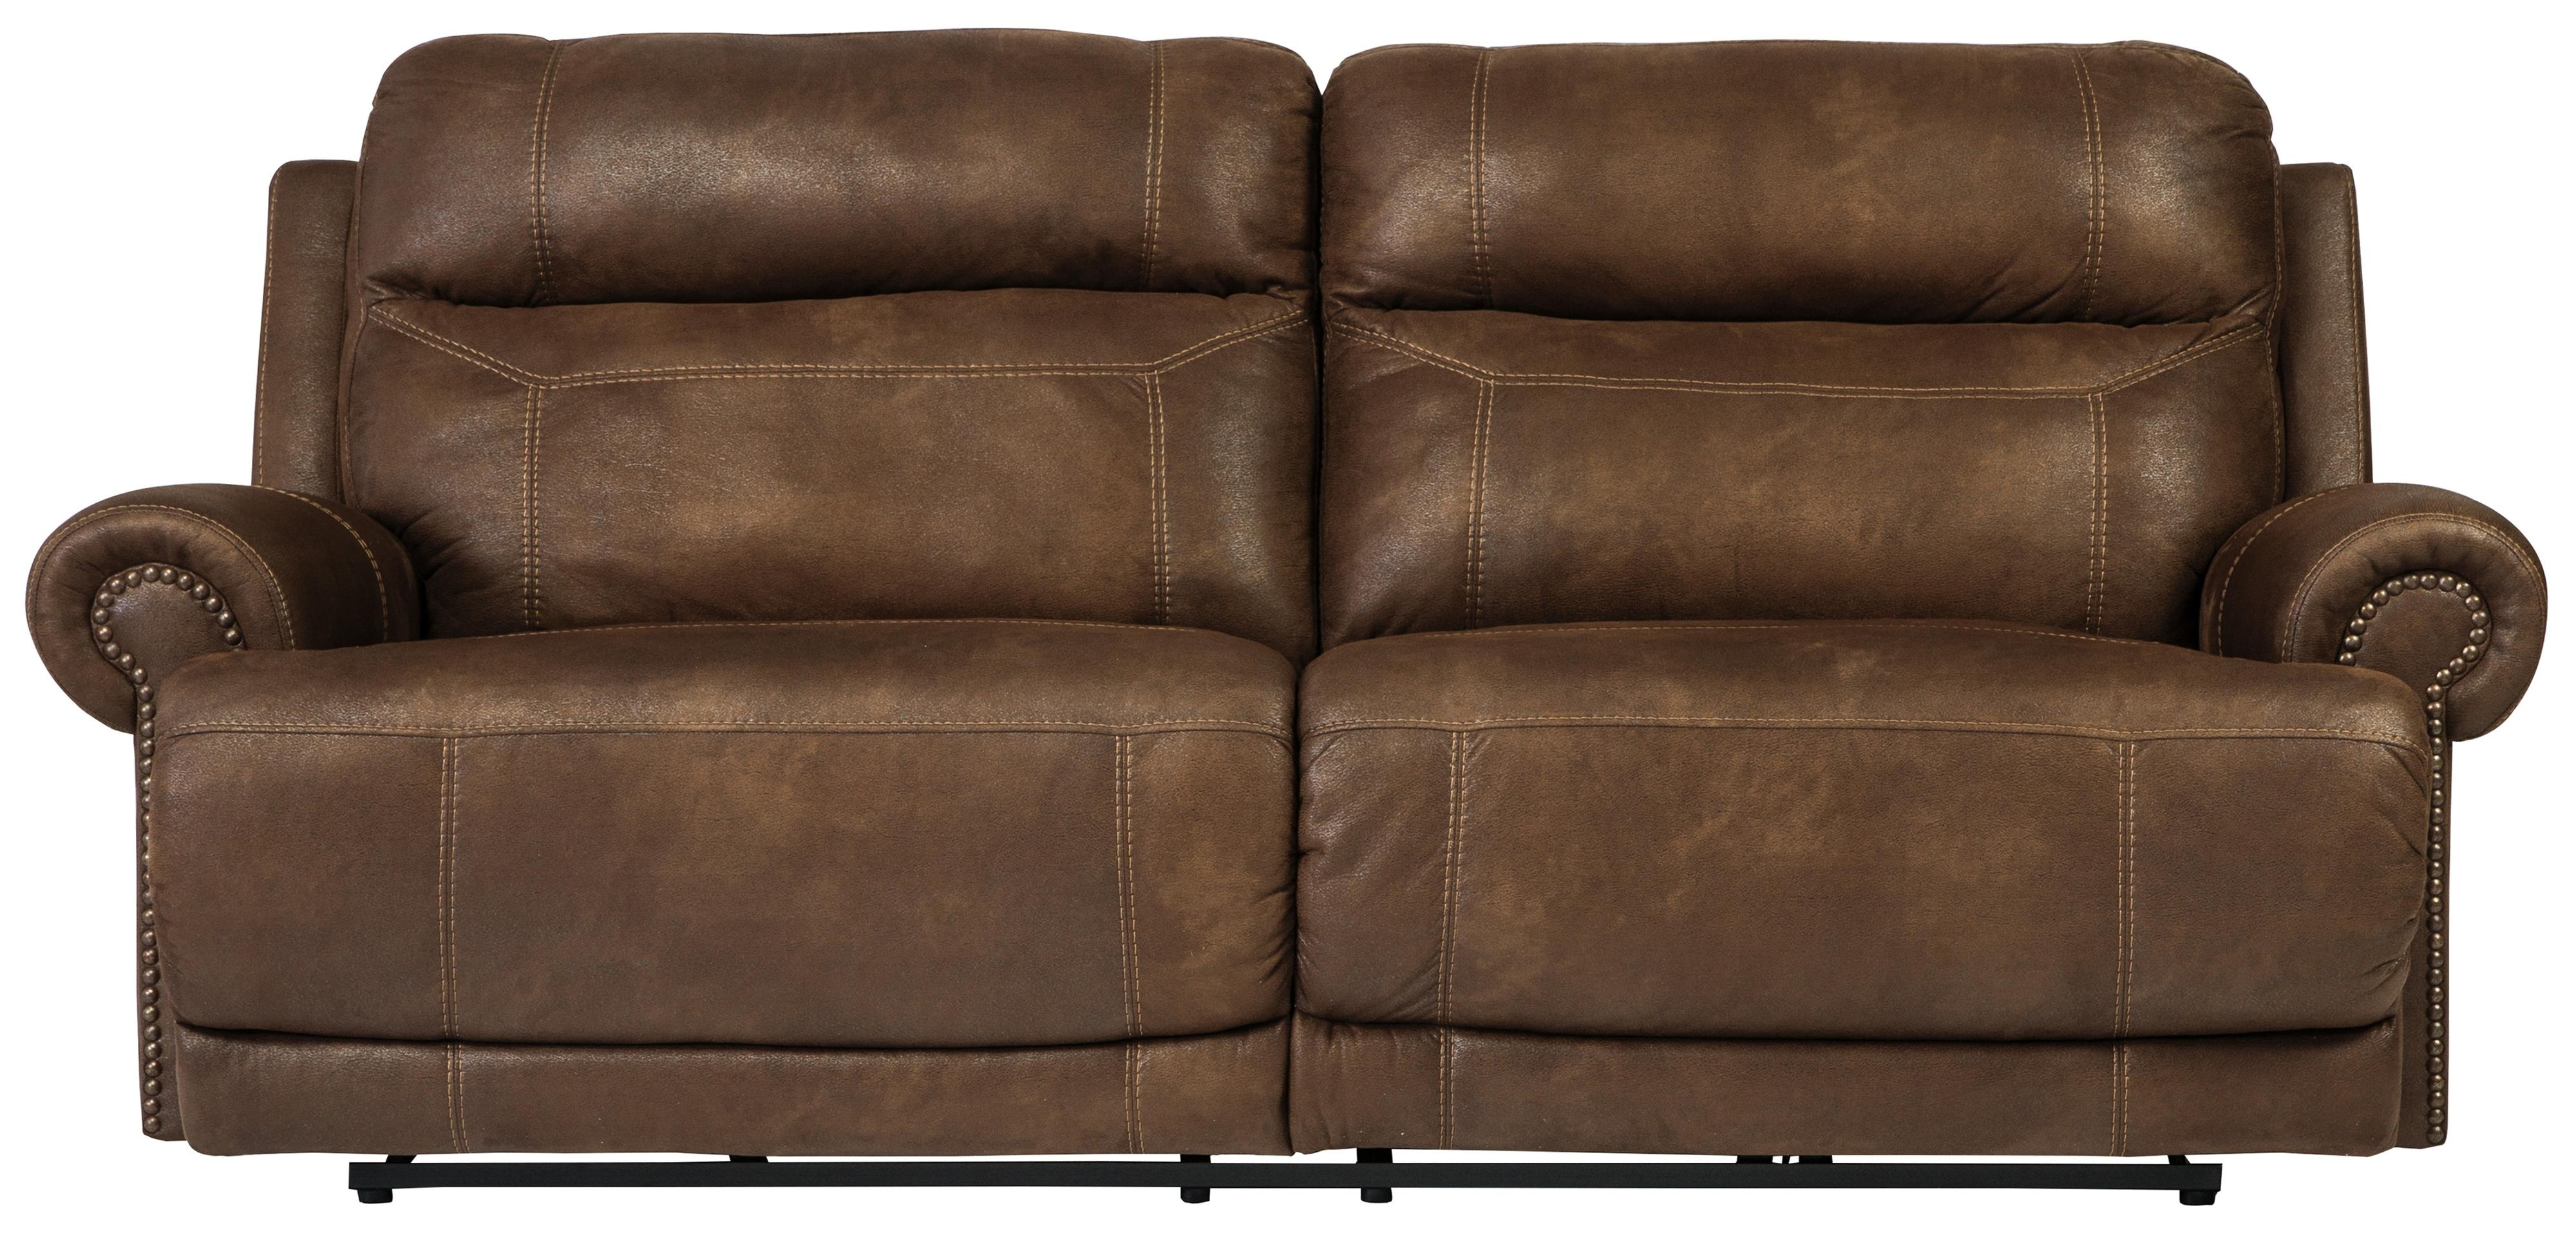 2 Seat Sectional Sofas Within Recent Signature Designashley Cayman Brown 3840081 2 Seat Reclining (View 19 of 20)